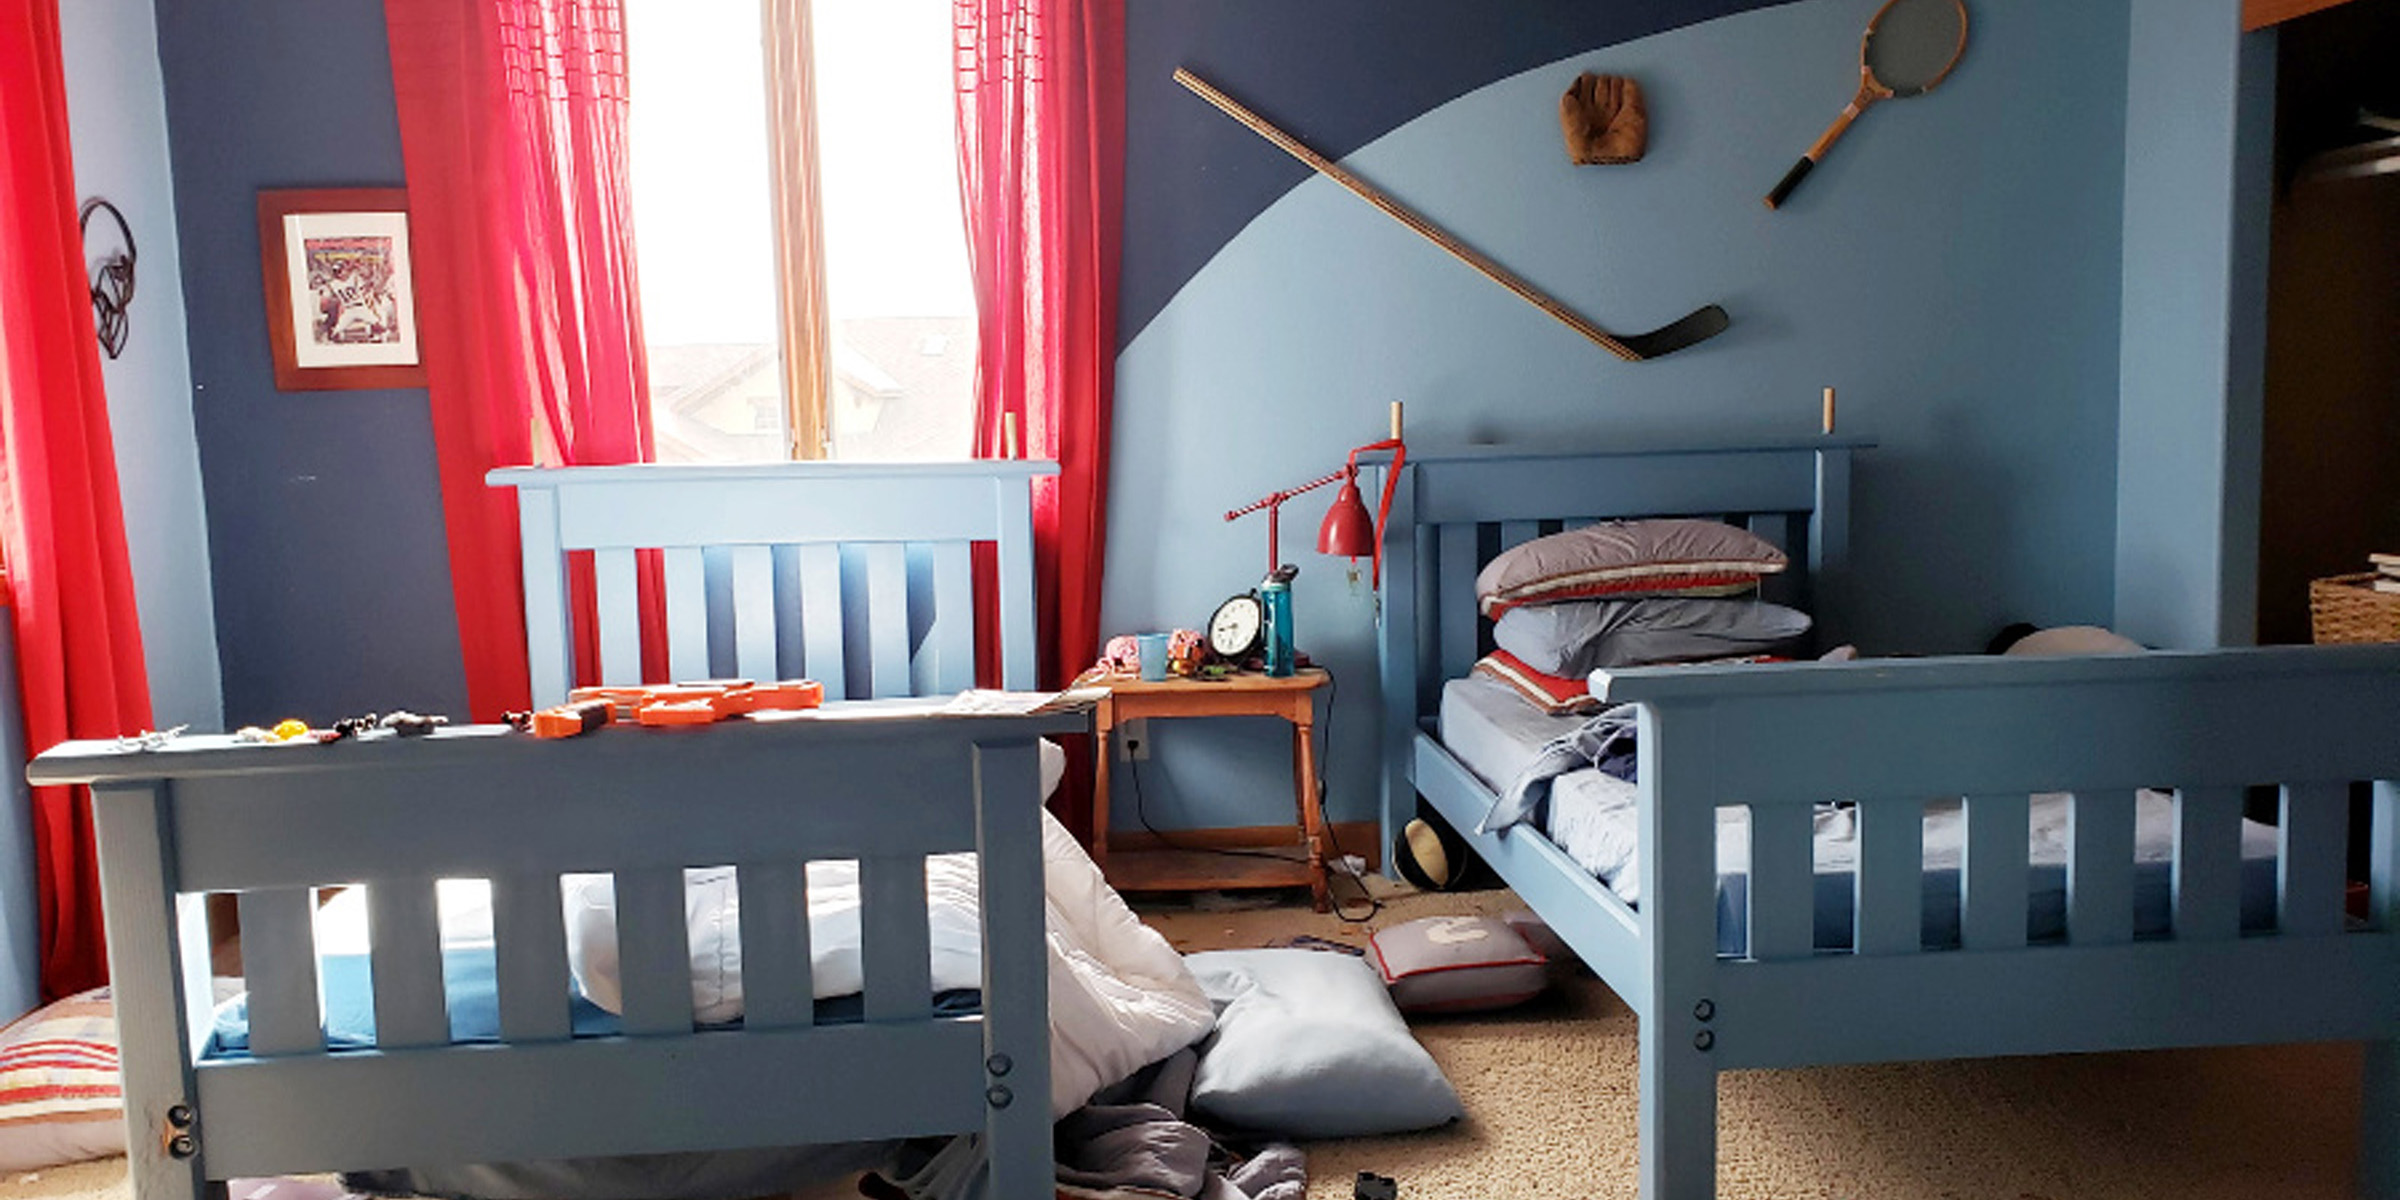 Boys' room get the coolest makeover with a rock climbing wall and more